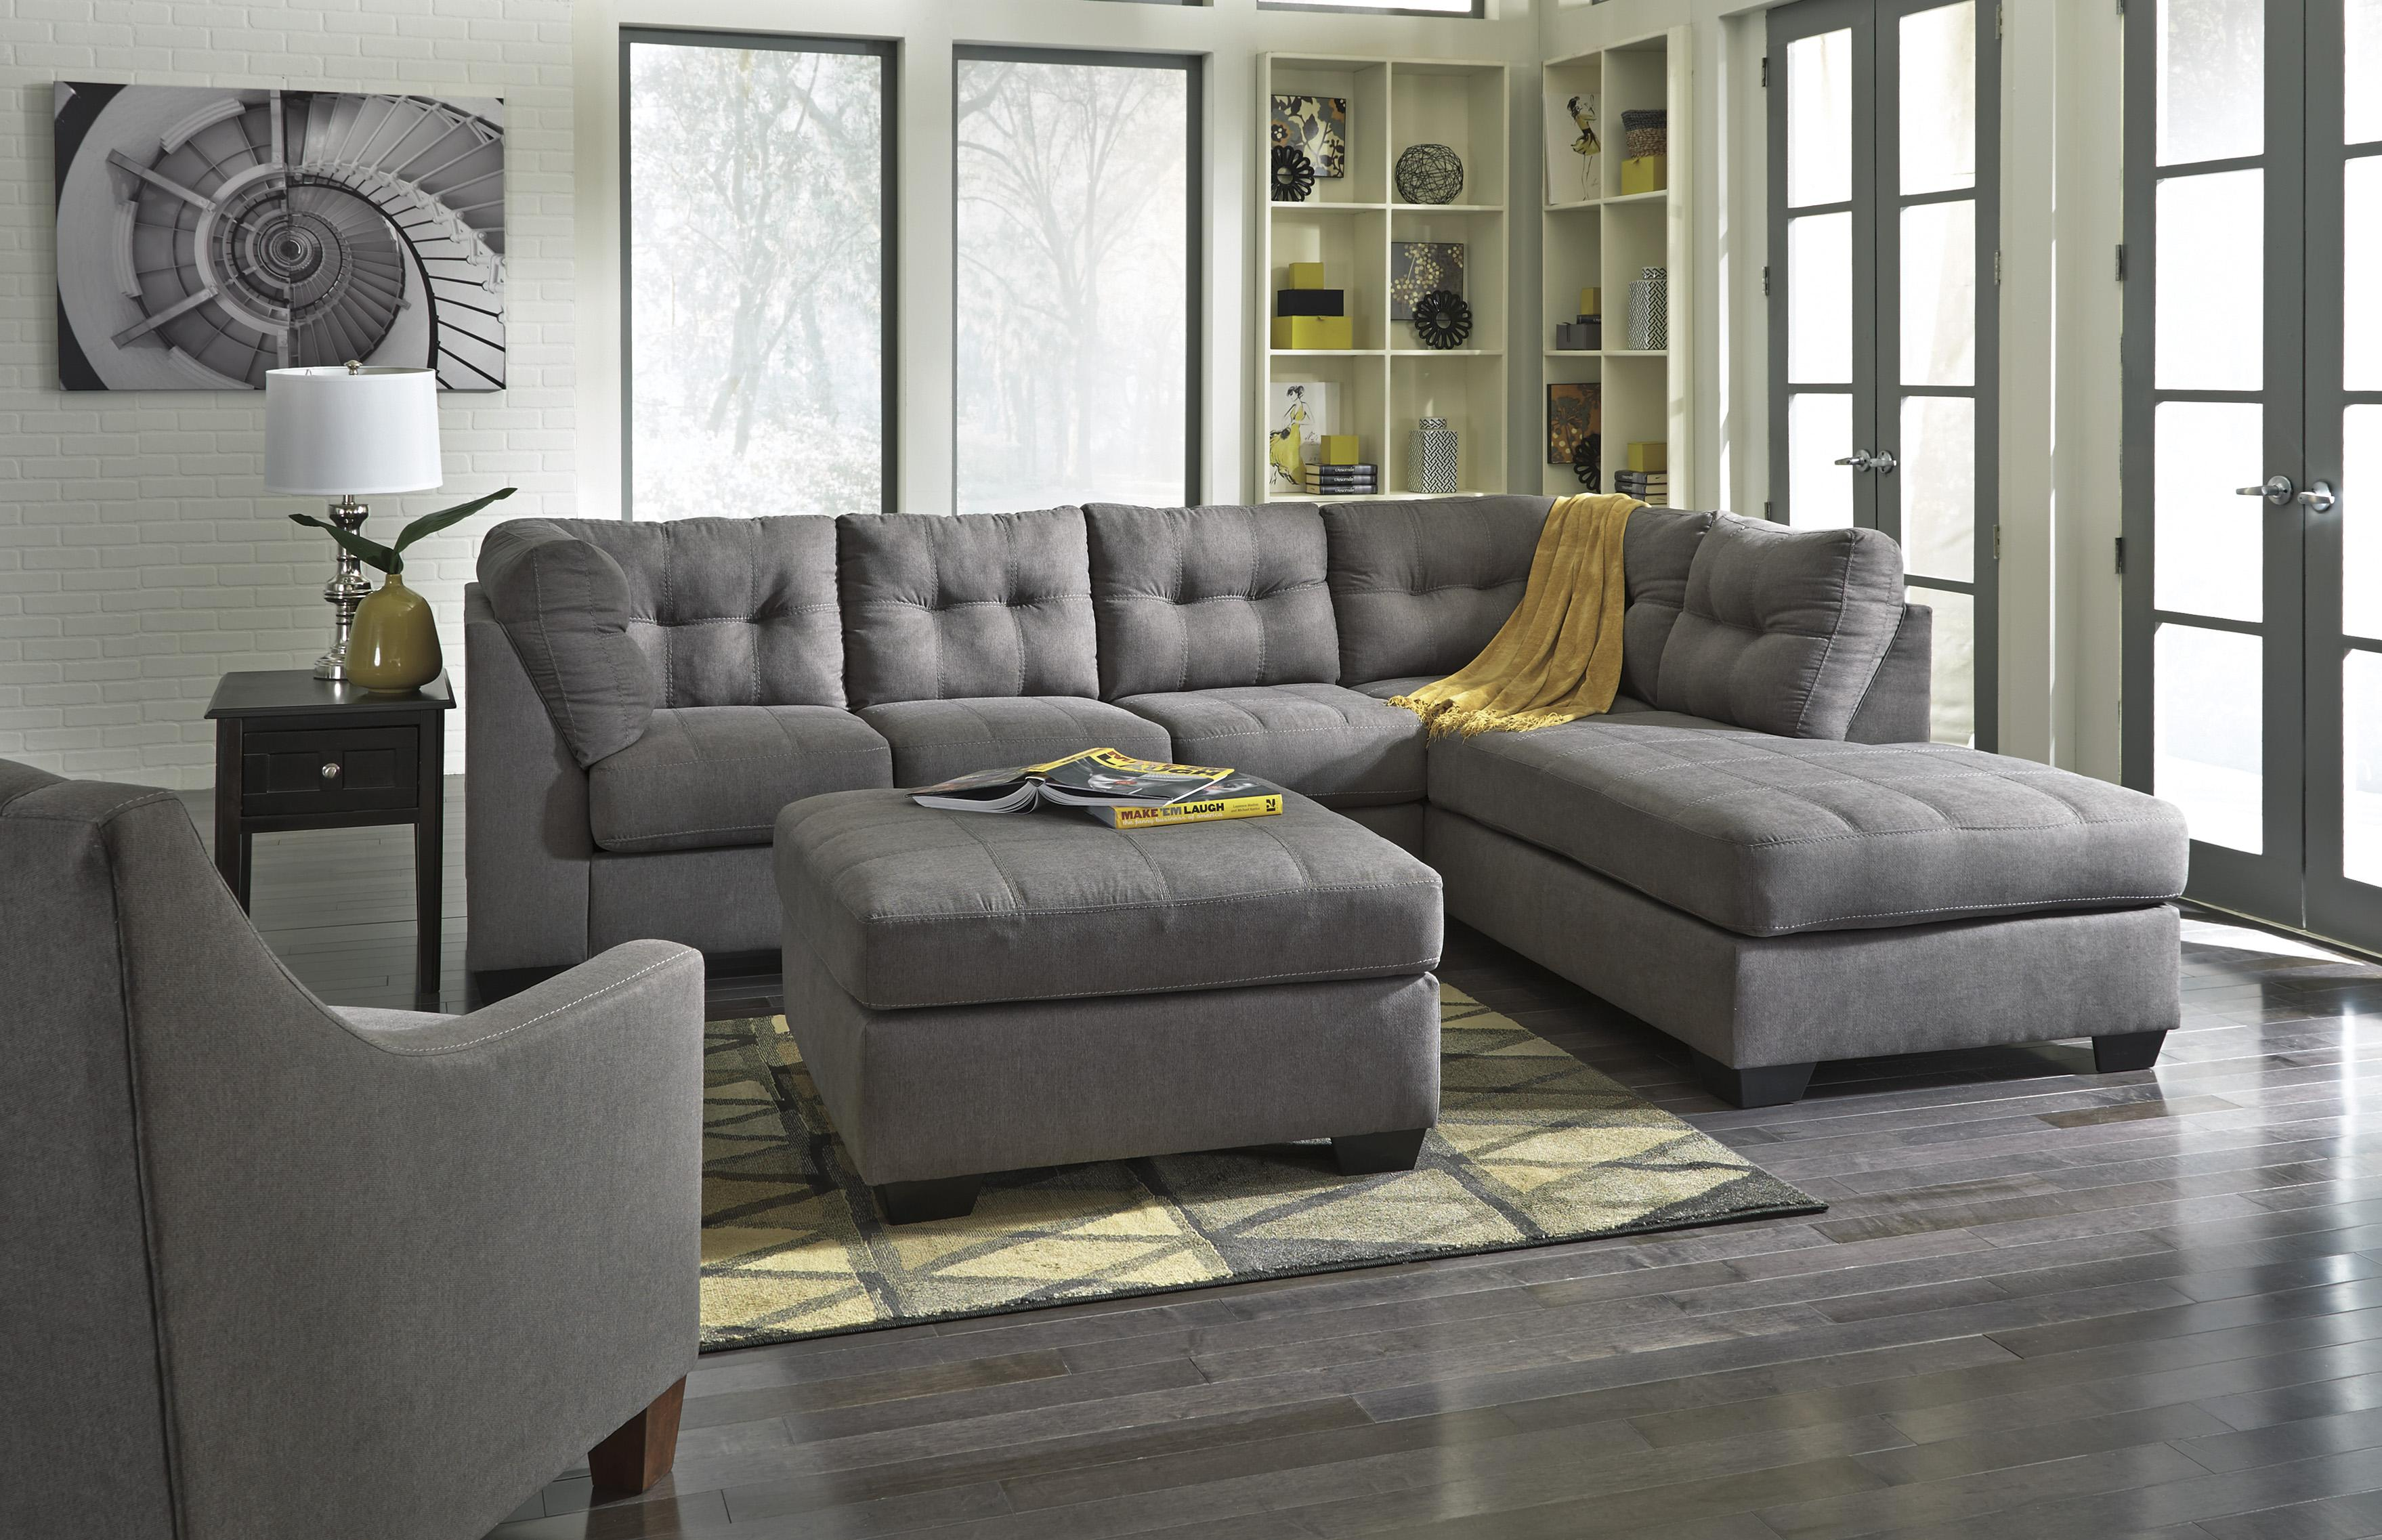 fufsack sofa sleeper lounge chair clic tufted 2 piece sectional w and right chaise by